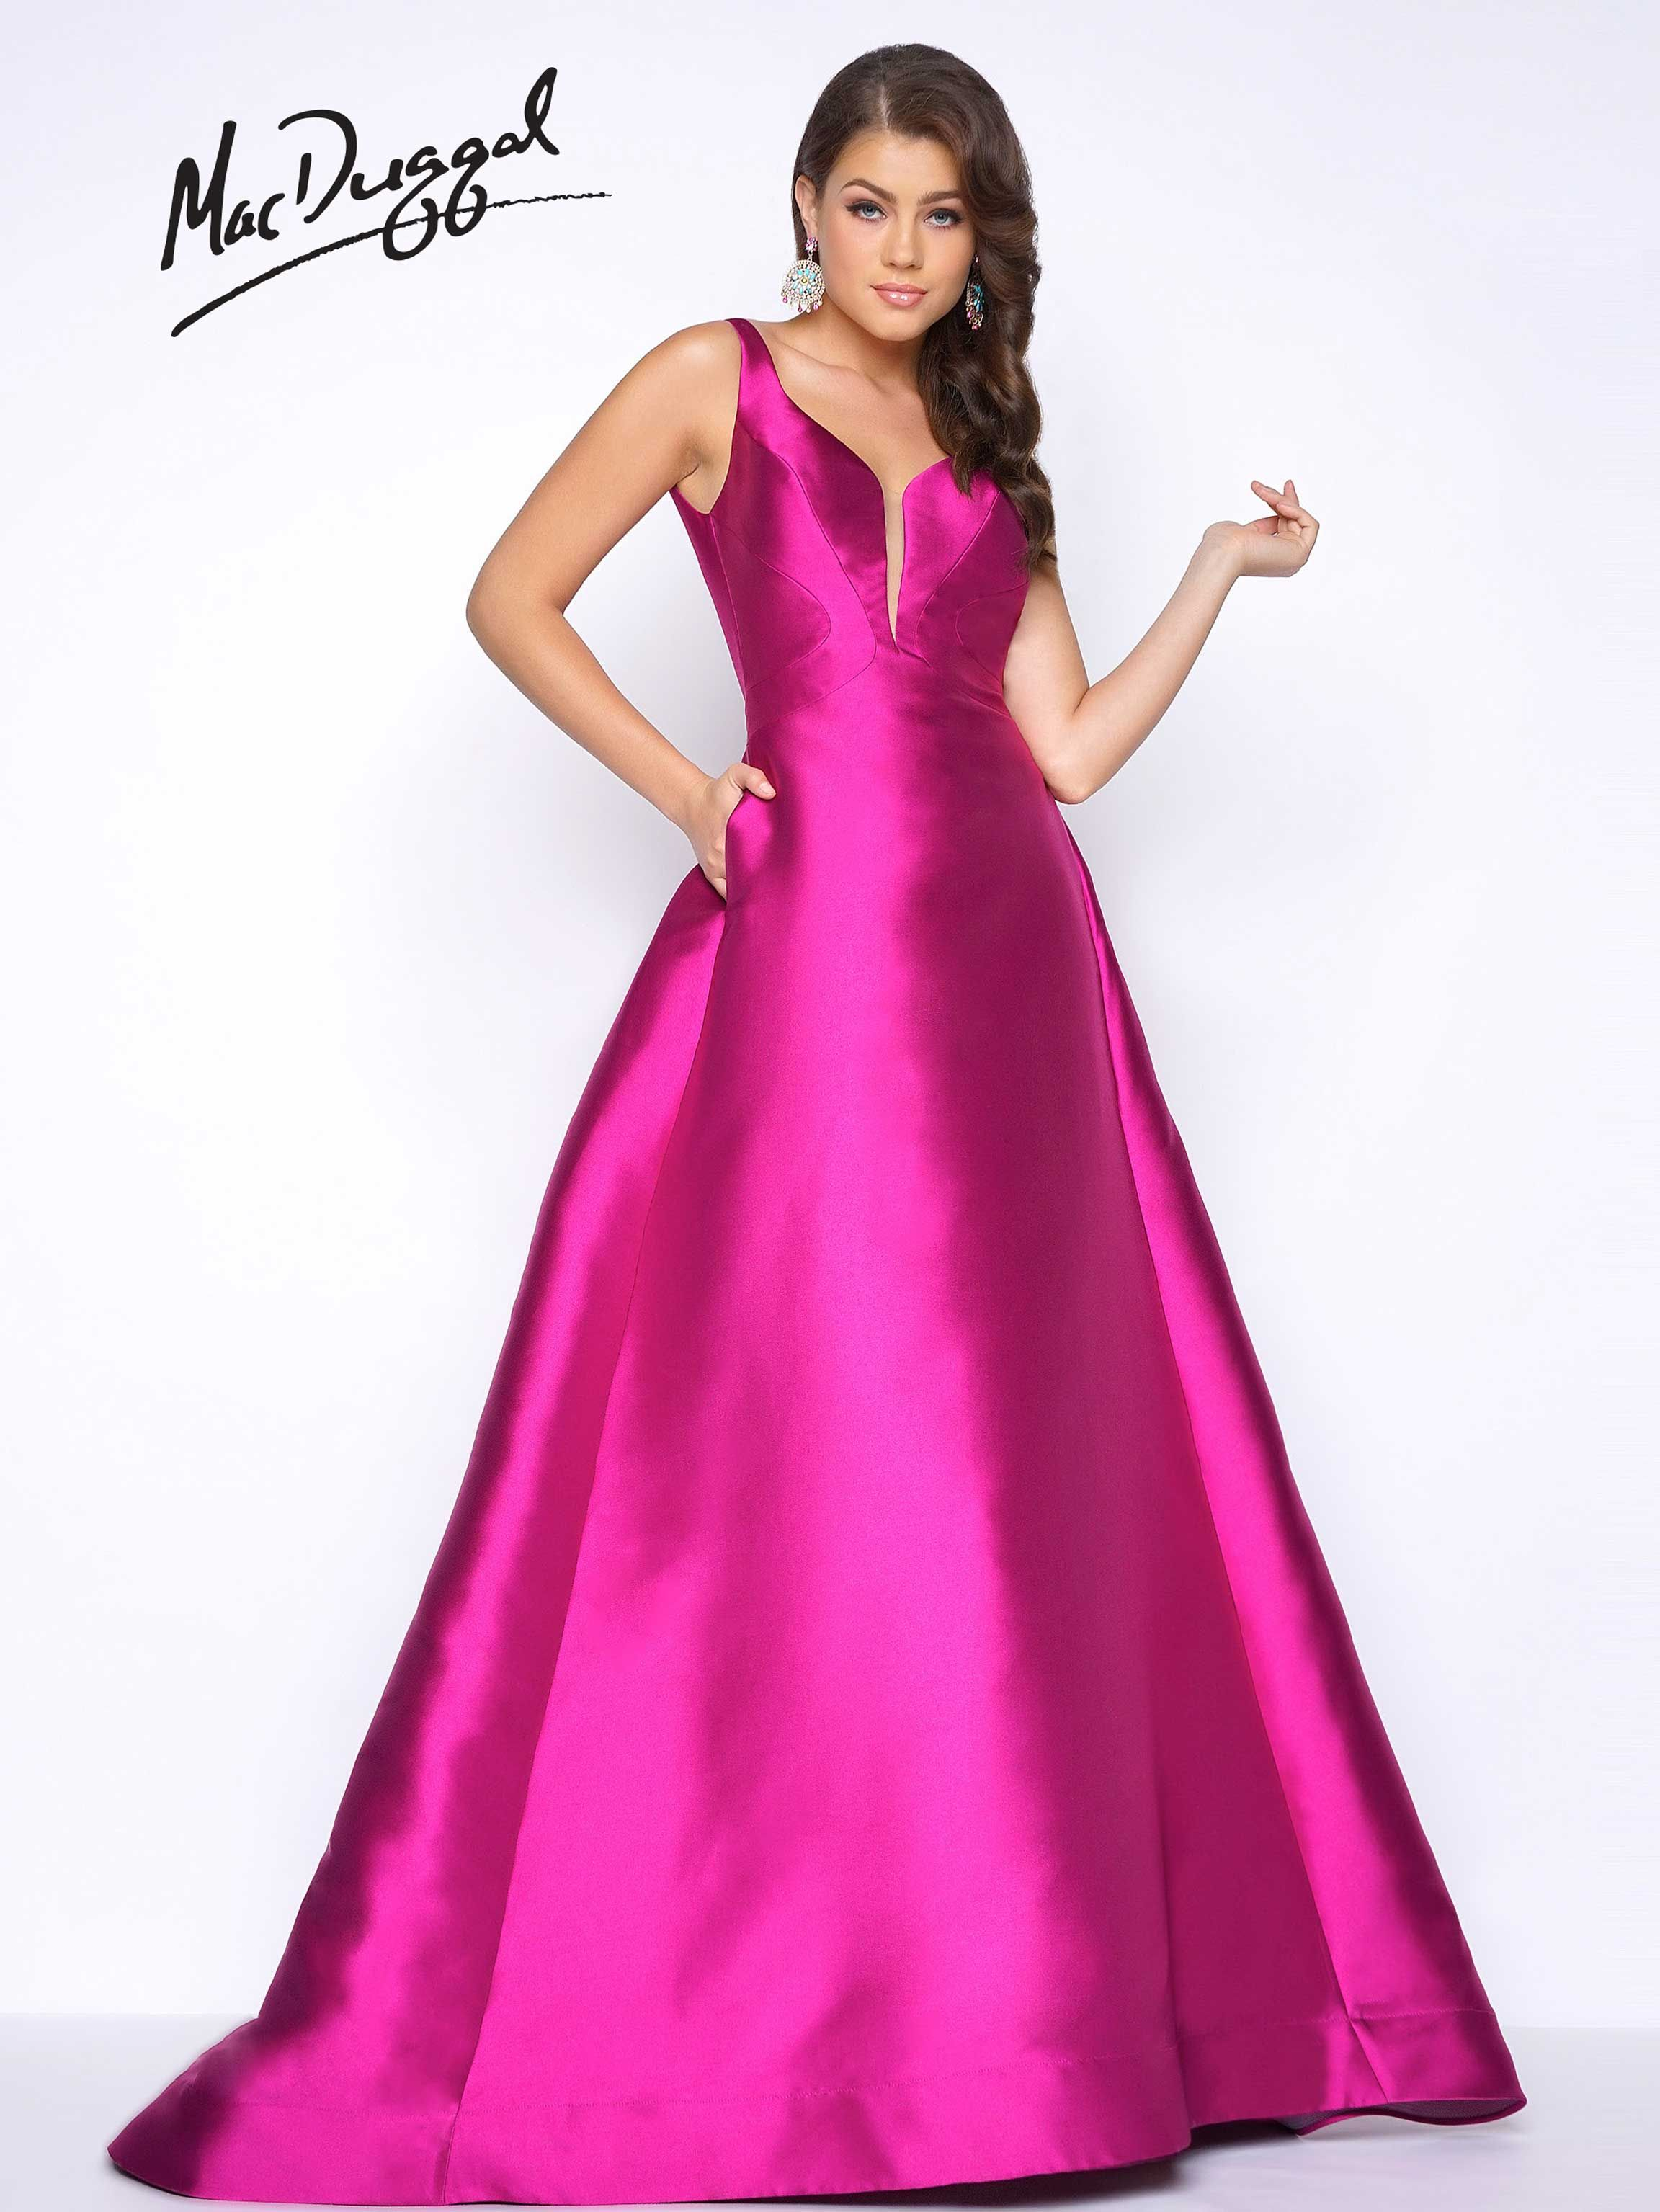 Sleeveless, satin, A-line floor length ball gown with open back and ...